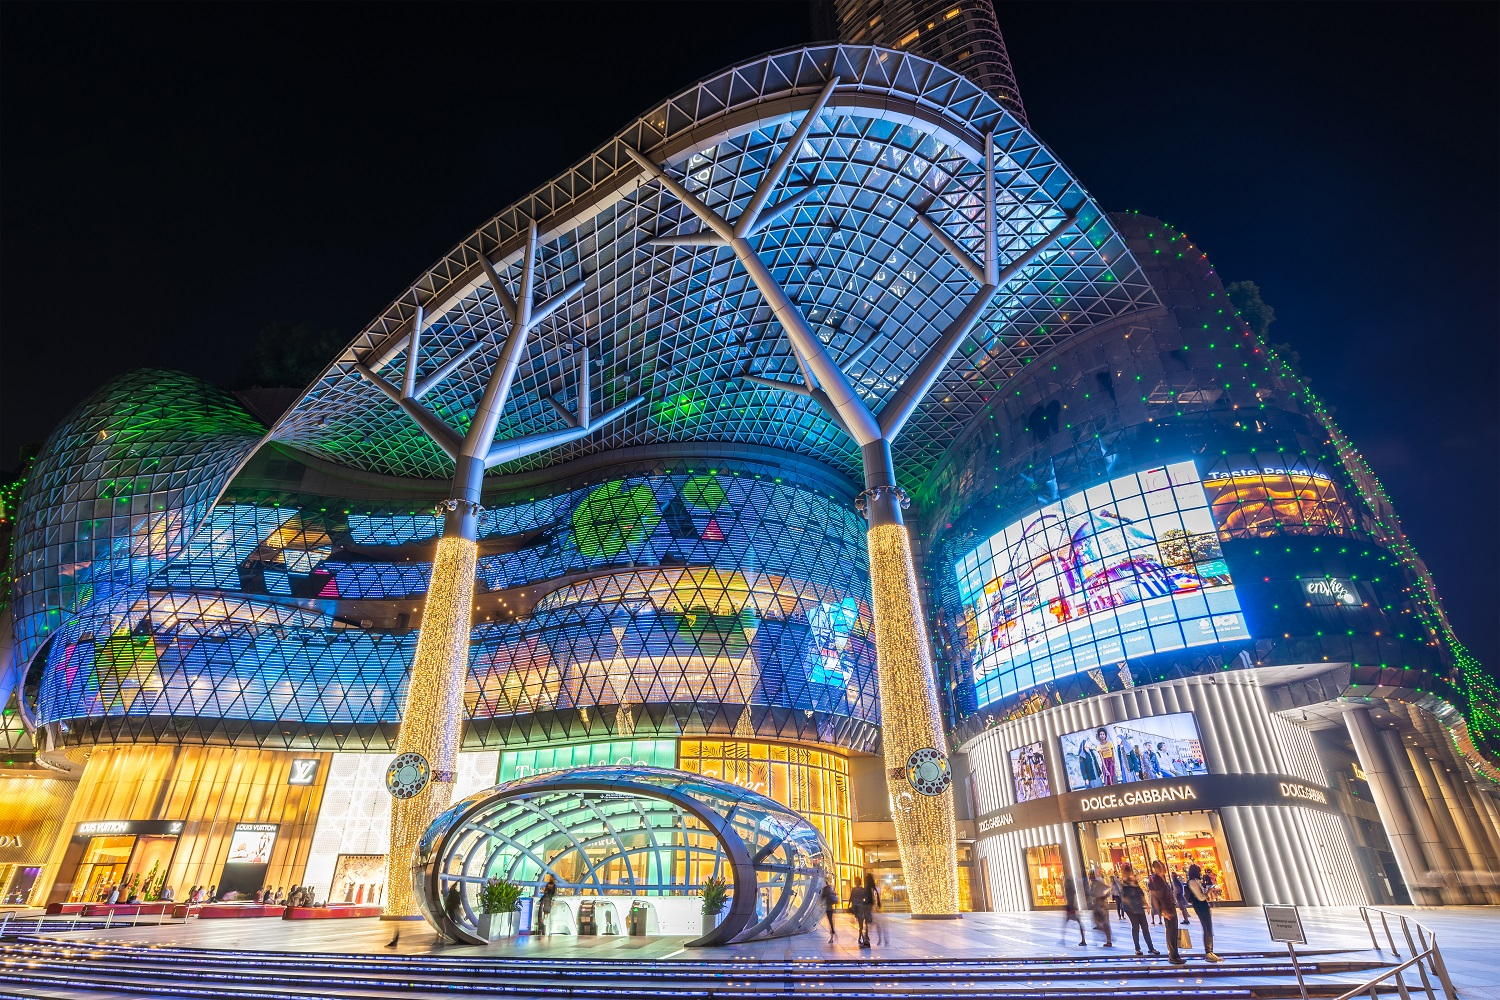 Mall facade on Orchard Road-Singapore